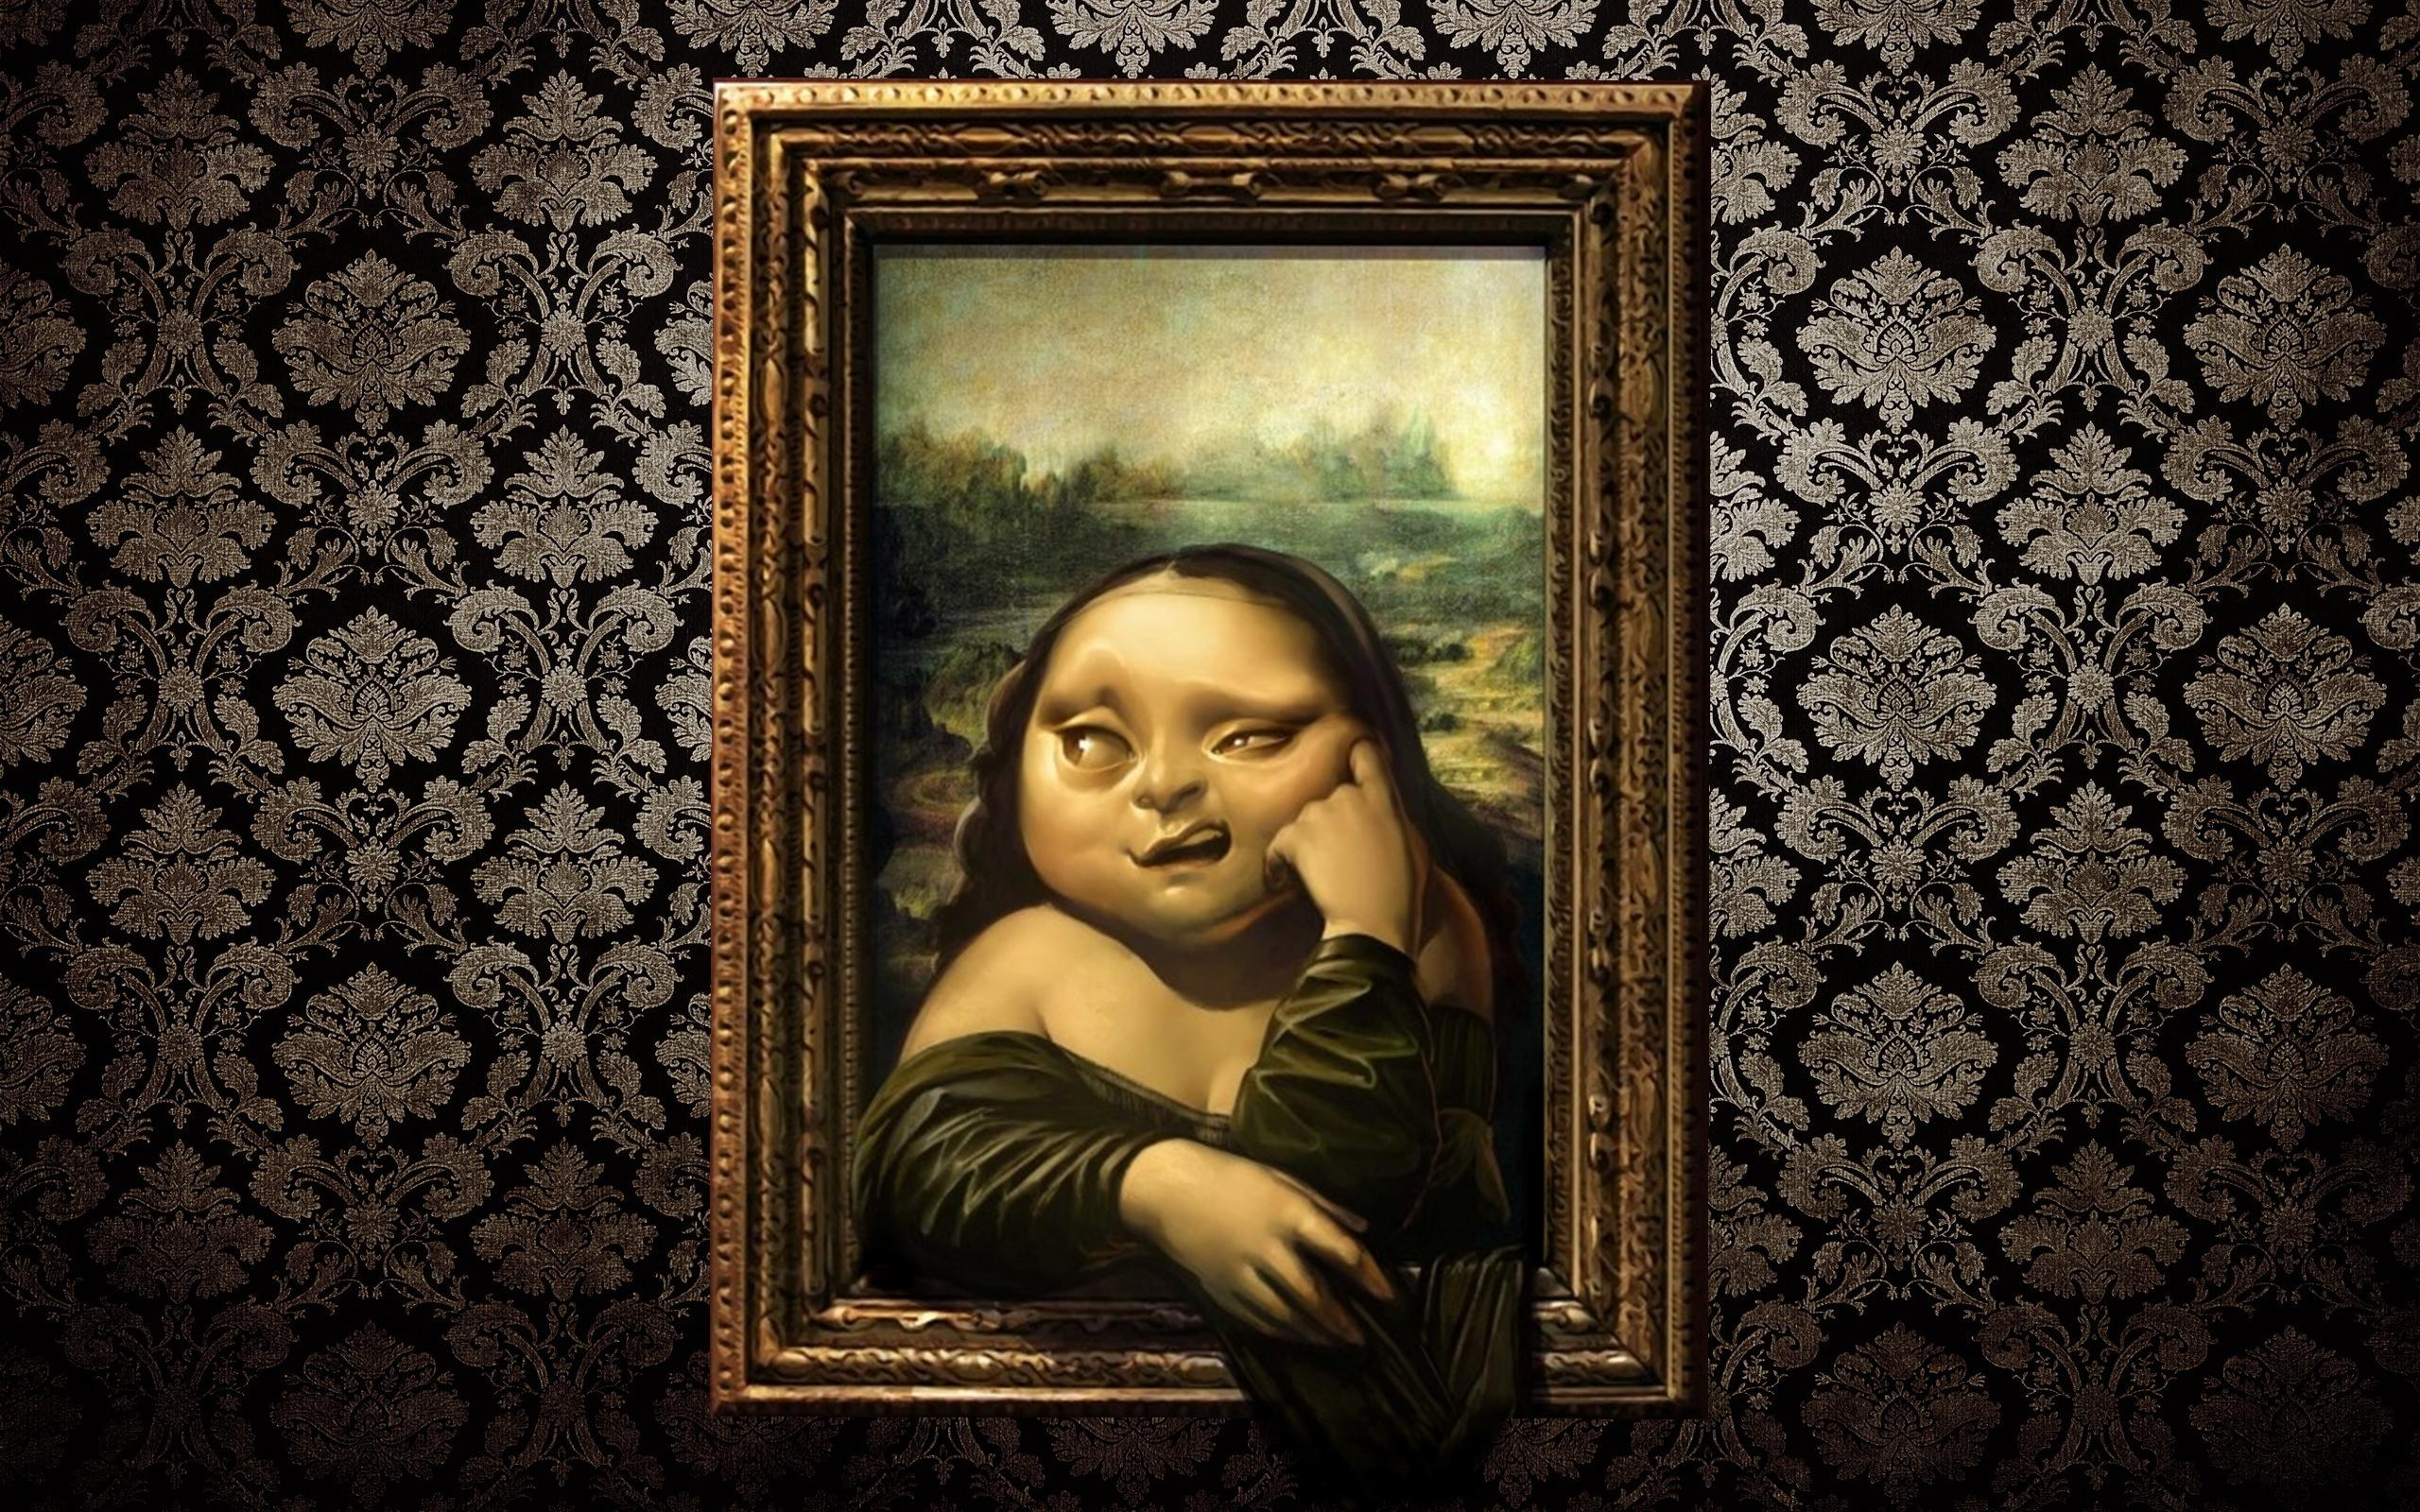 Mona lisa   129072   High Quality and Resolution Wallpapers on 2560x1600